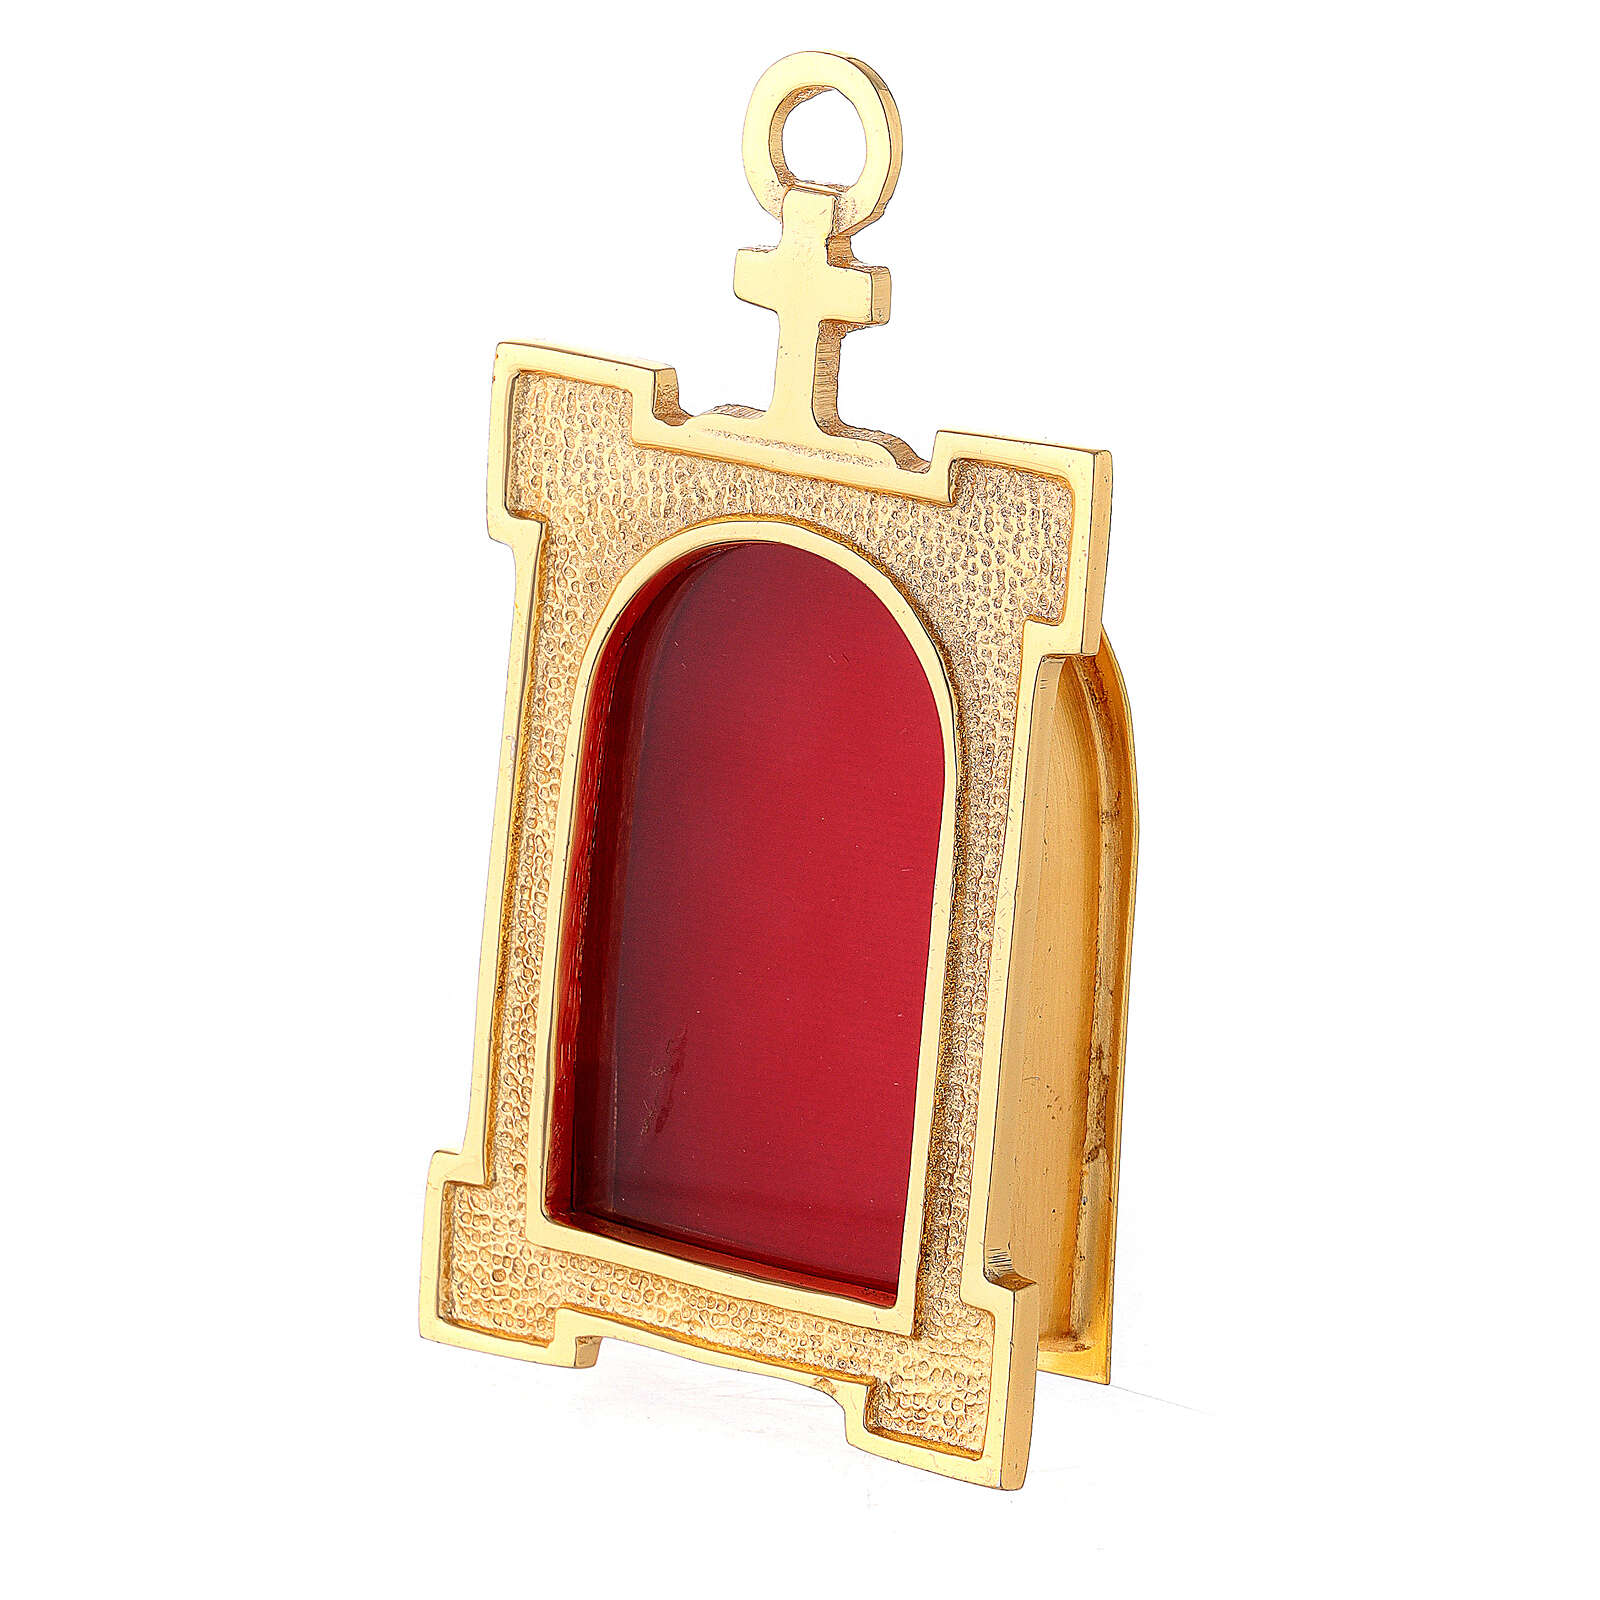 Wall gate reliquary of gold plated brass and red velvet 4